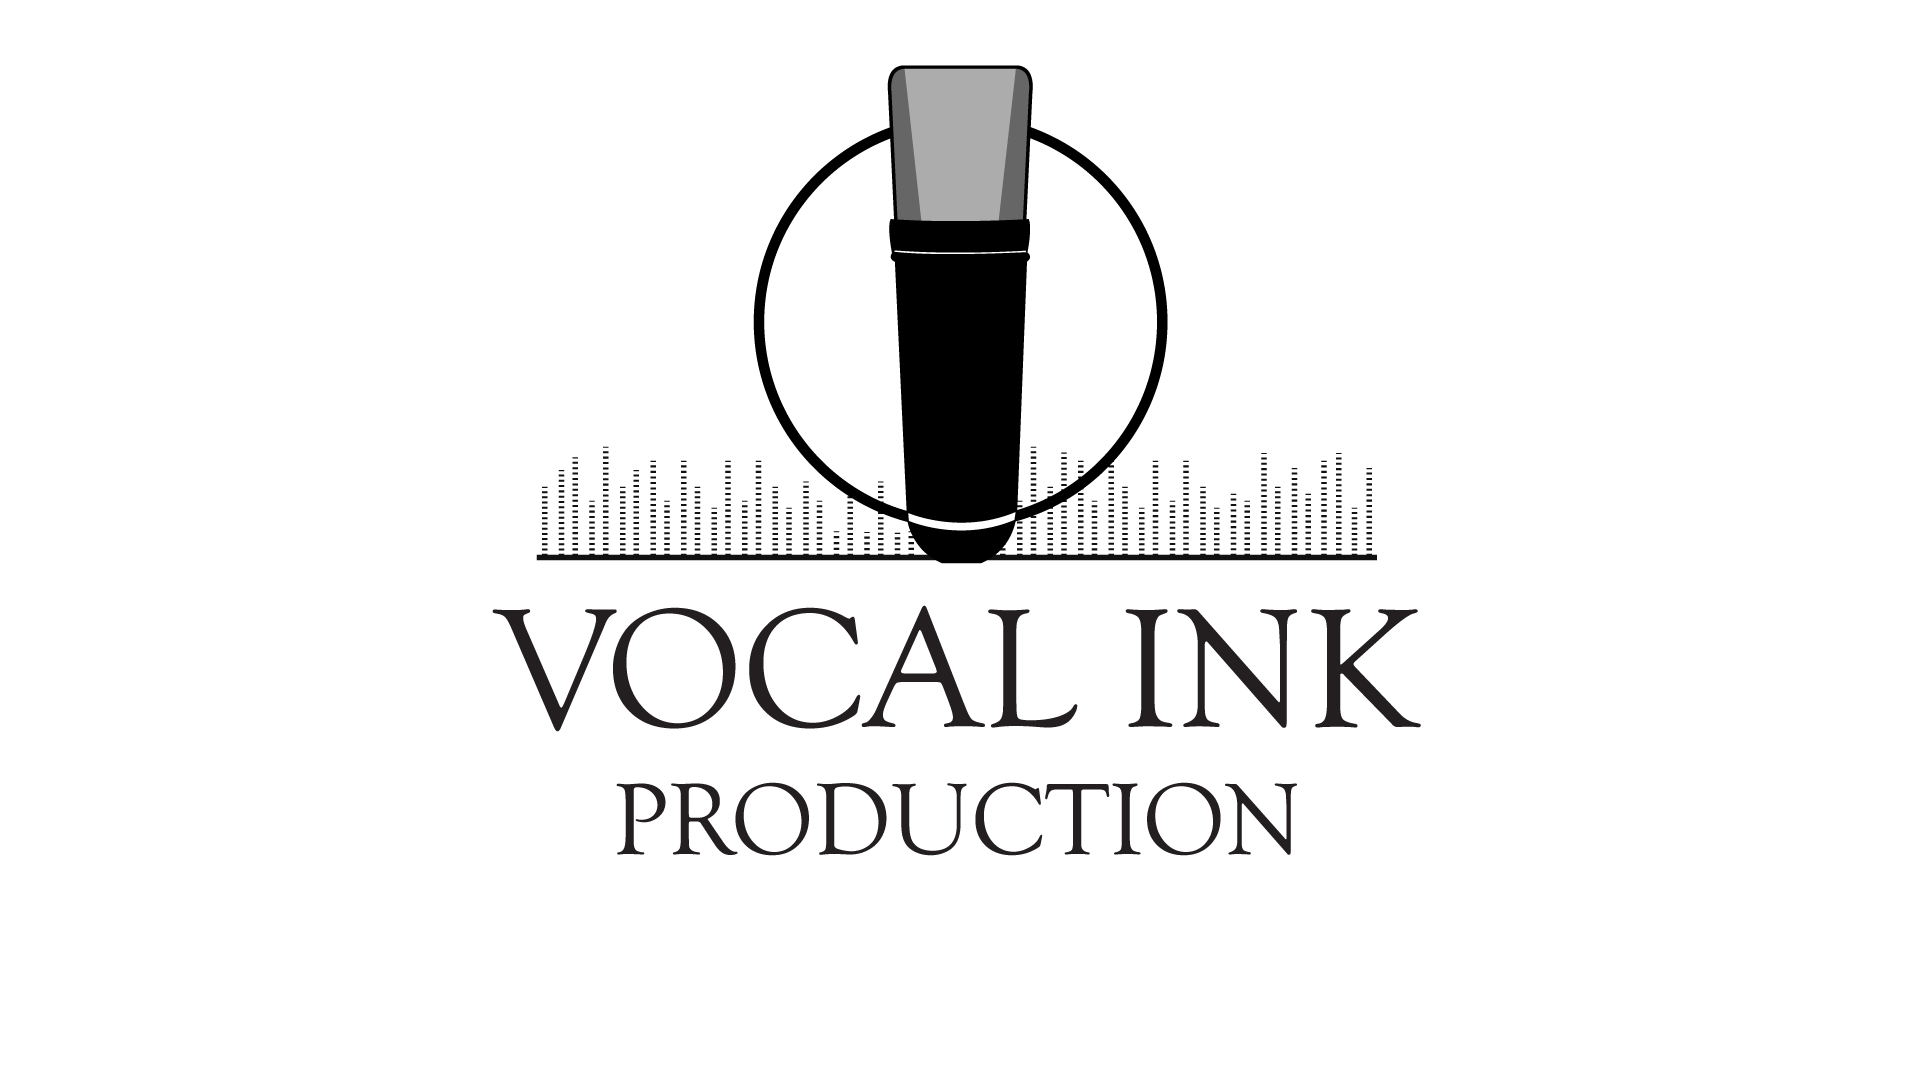 Vocal Ink Production